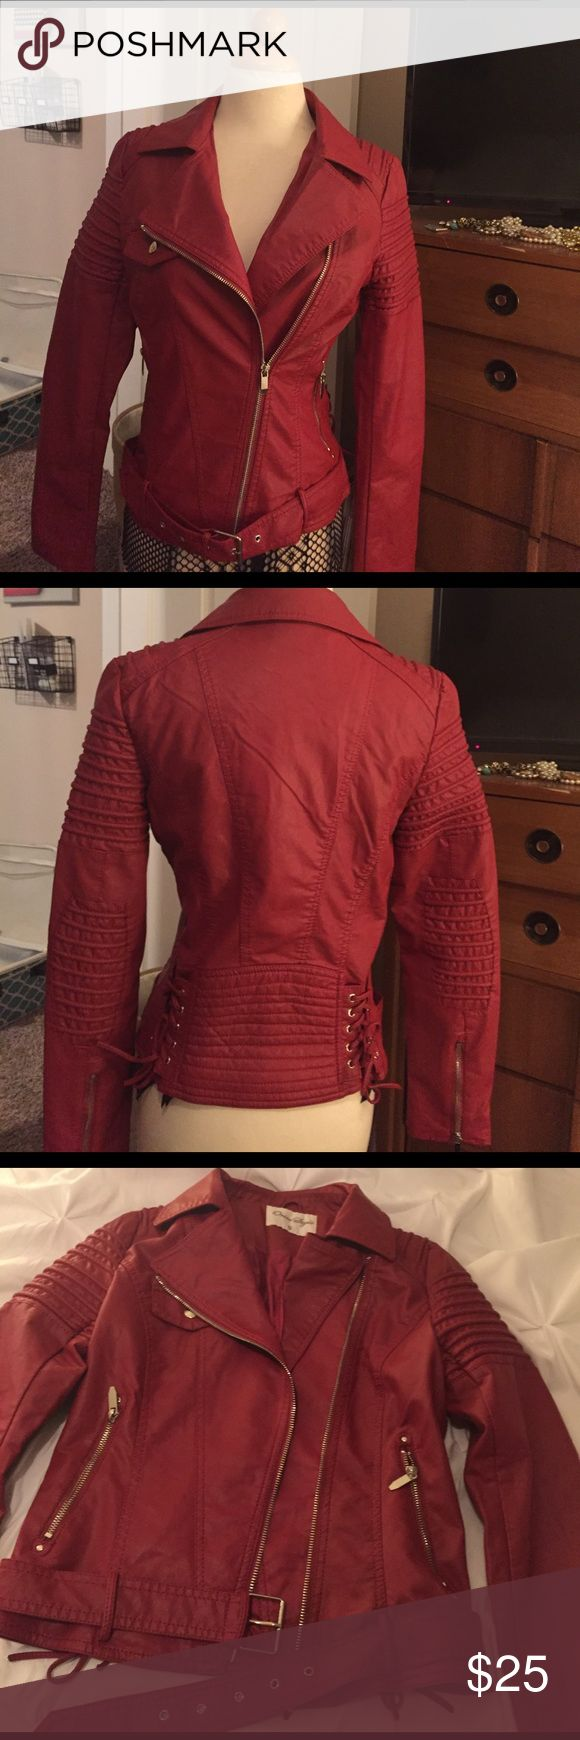 Red leather jacket NWOT Awesome red leather jacket with lace up detail in the back. I bought this but it was too small Jackets & Coats